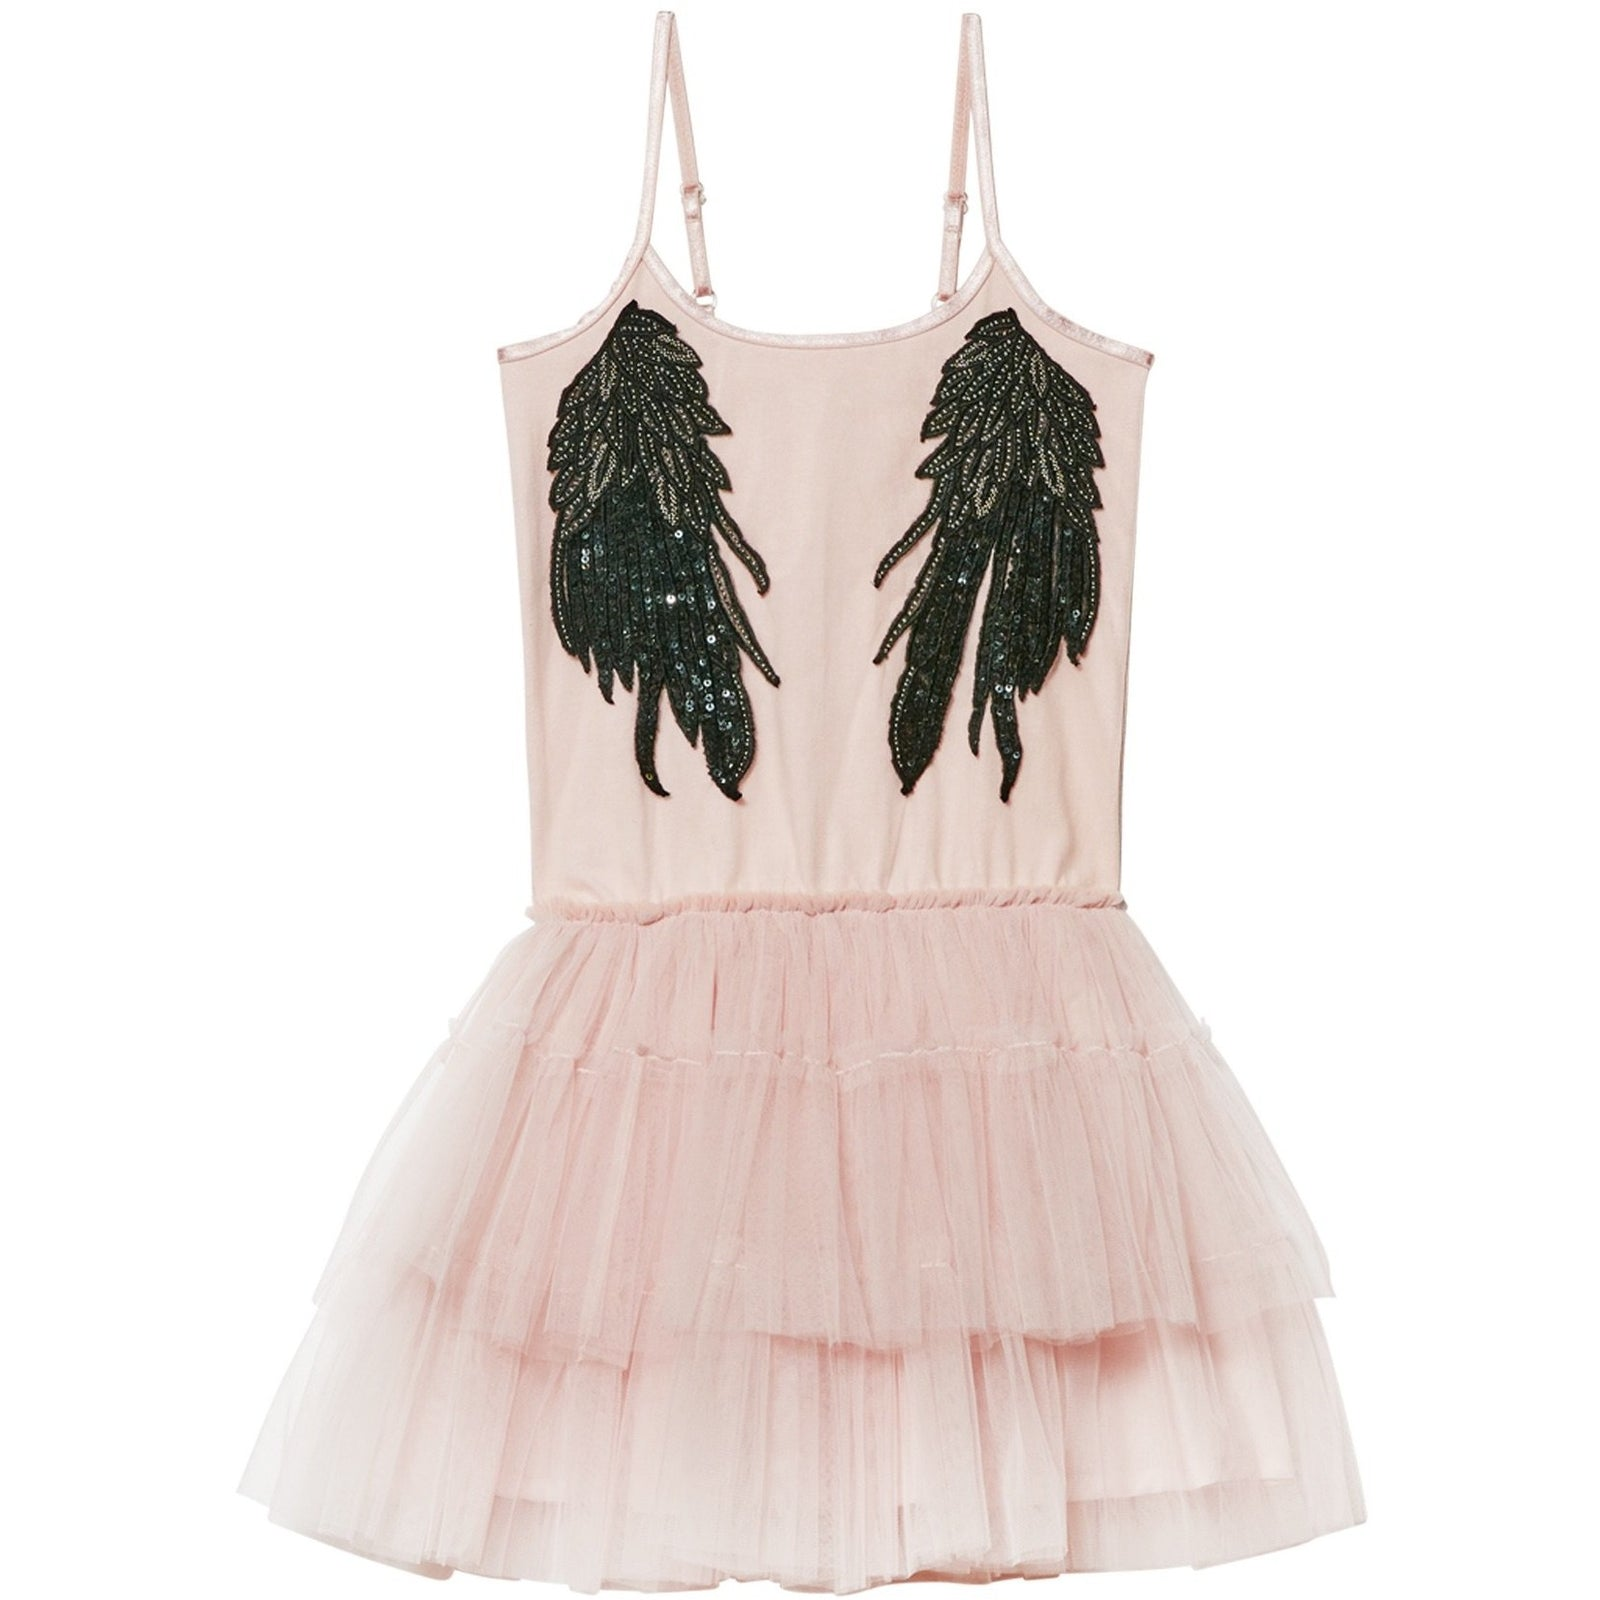 Whispers in the Wings Tutu Dress (Tea Rose) - Tutu du Monde